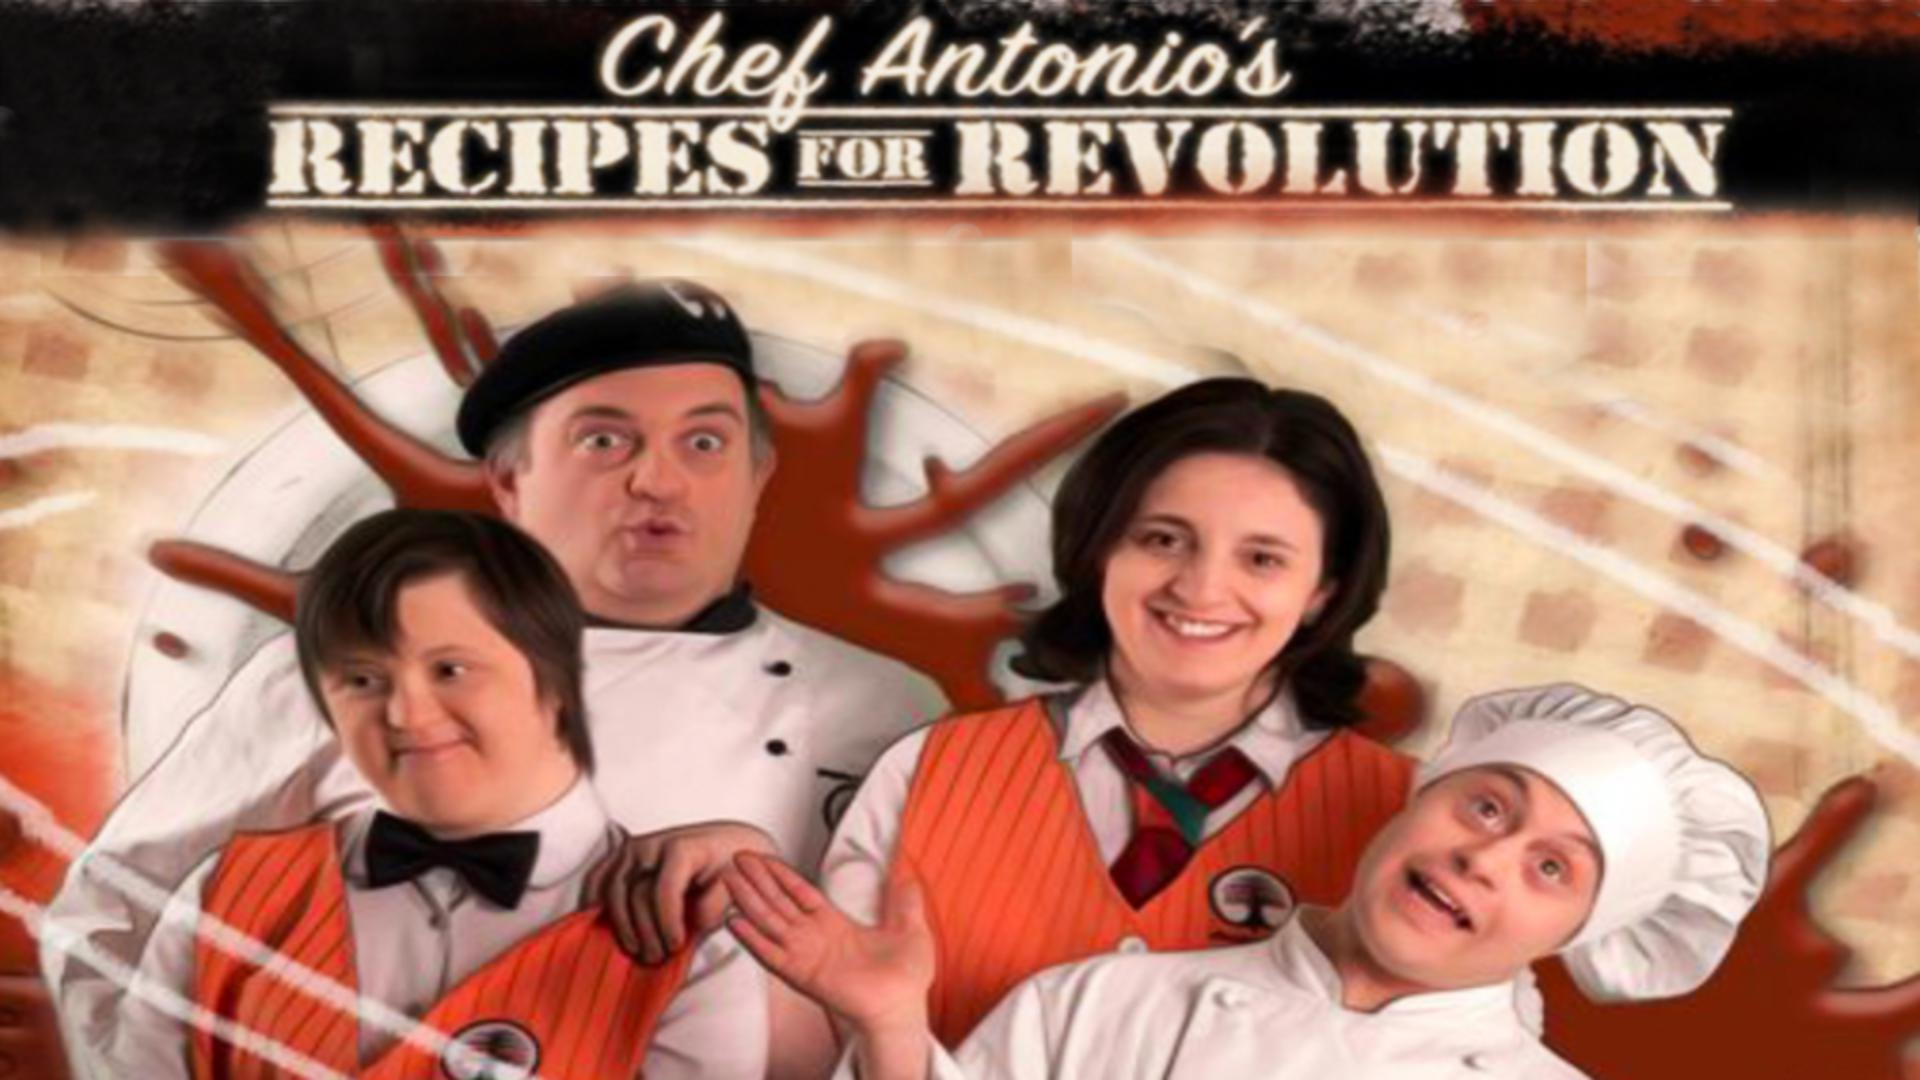 Chef Antonio's Recipes for Revolution